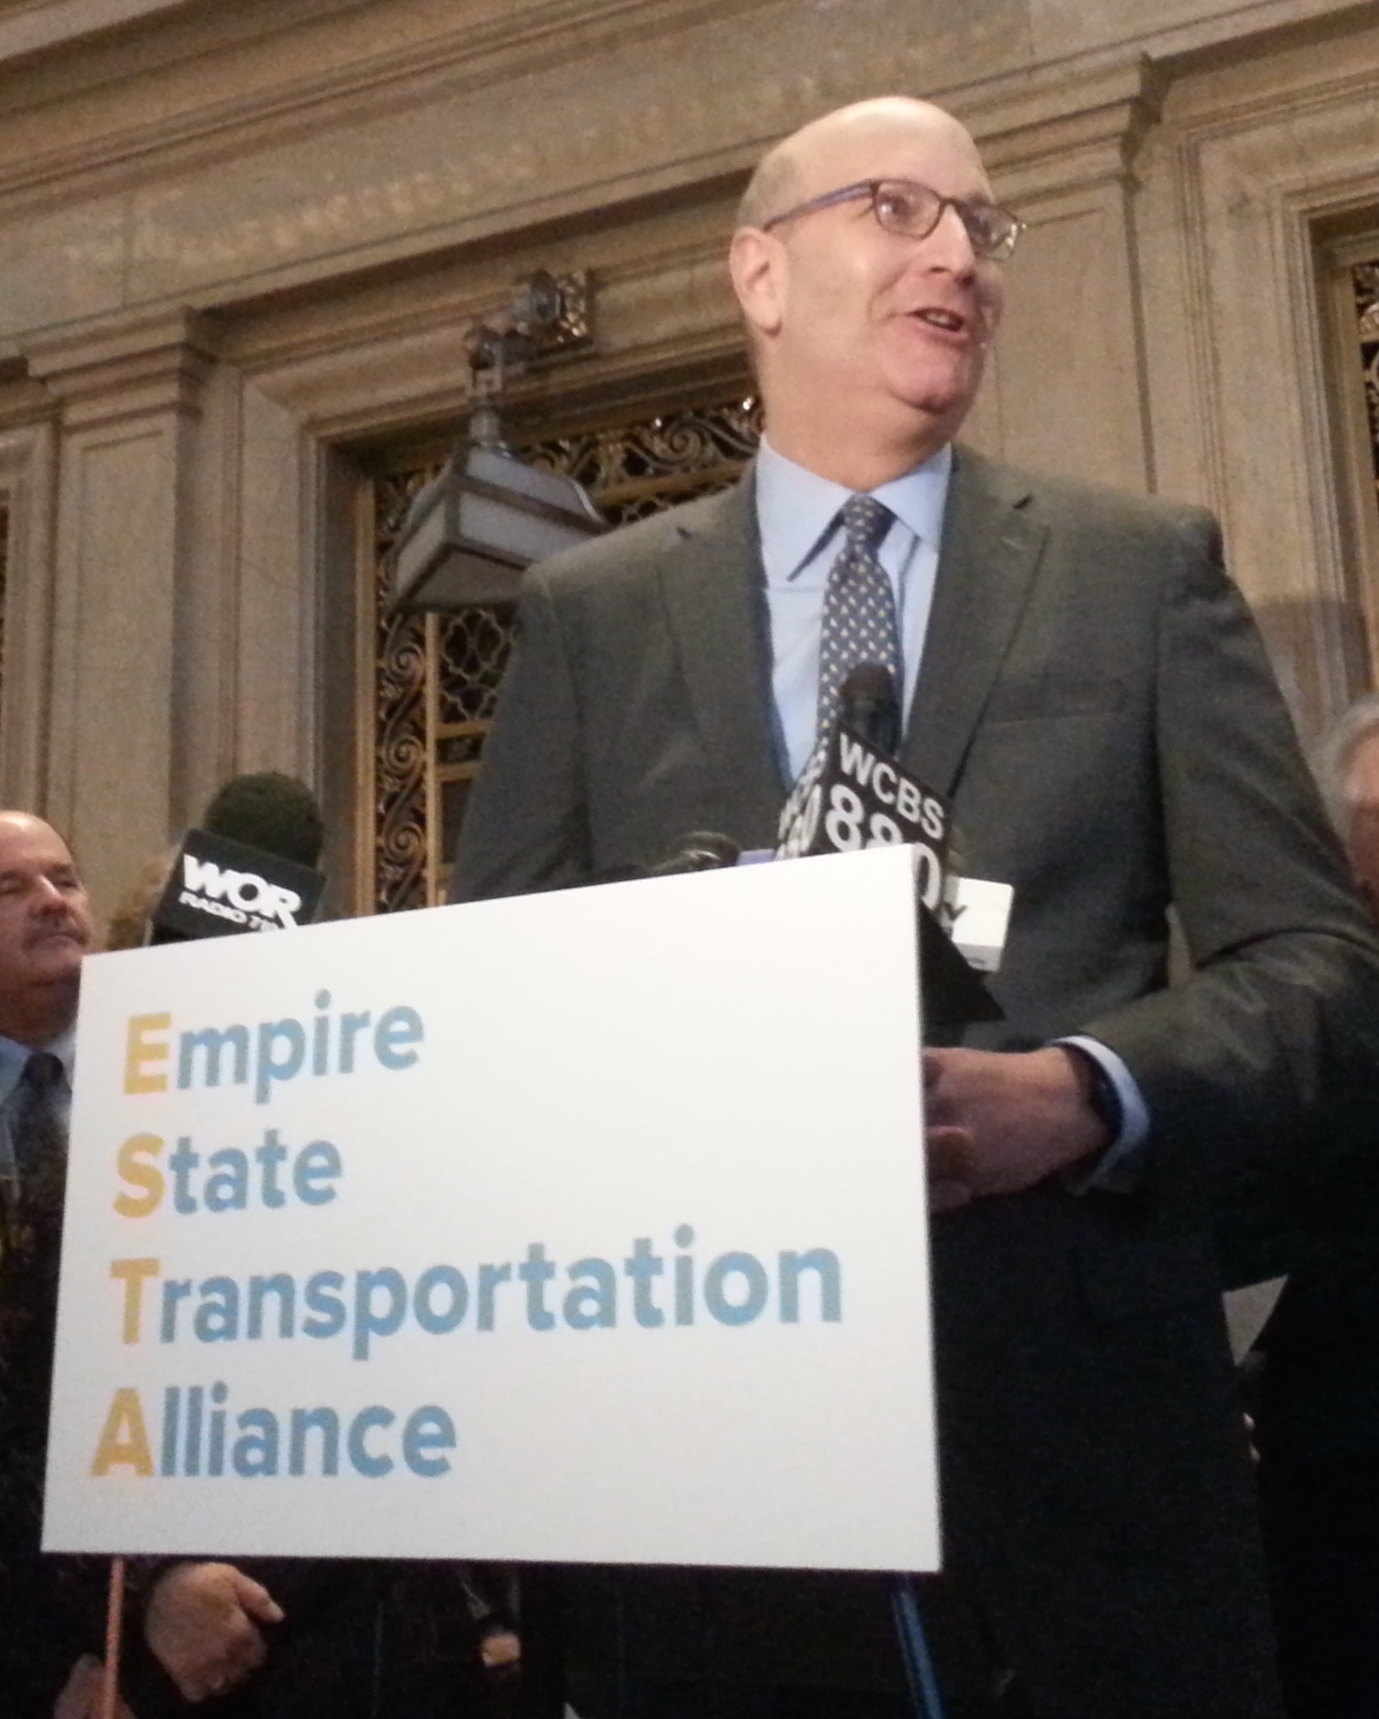 What do you think about my speech against Metropolitan Transportation Authority?